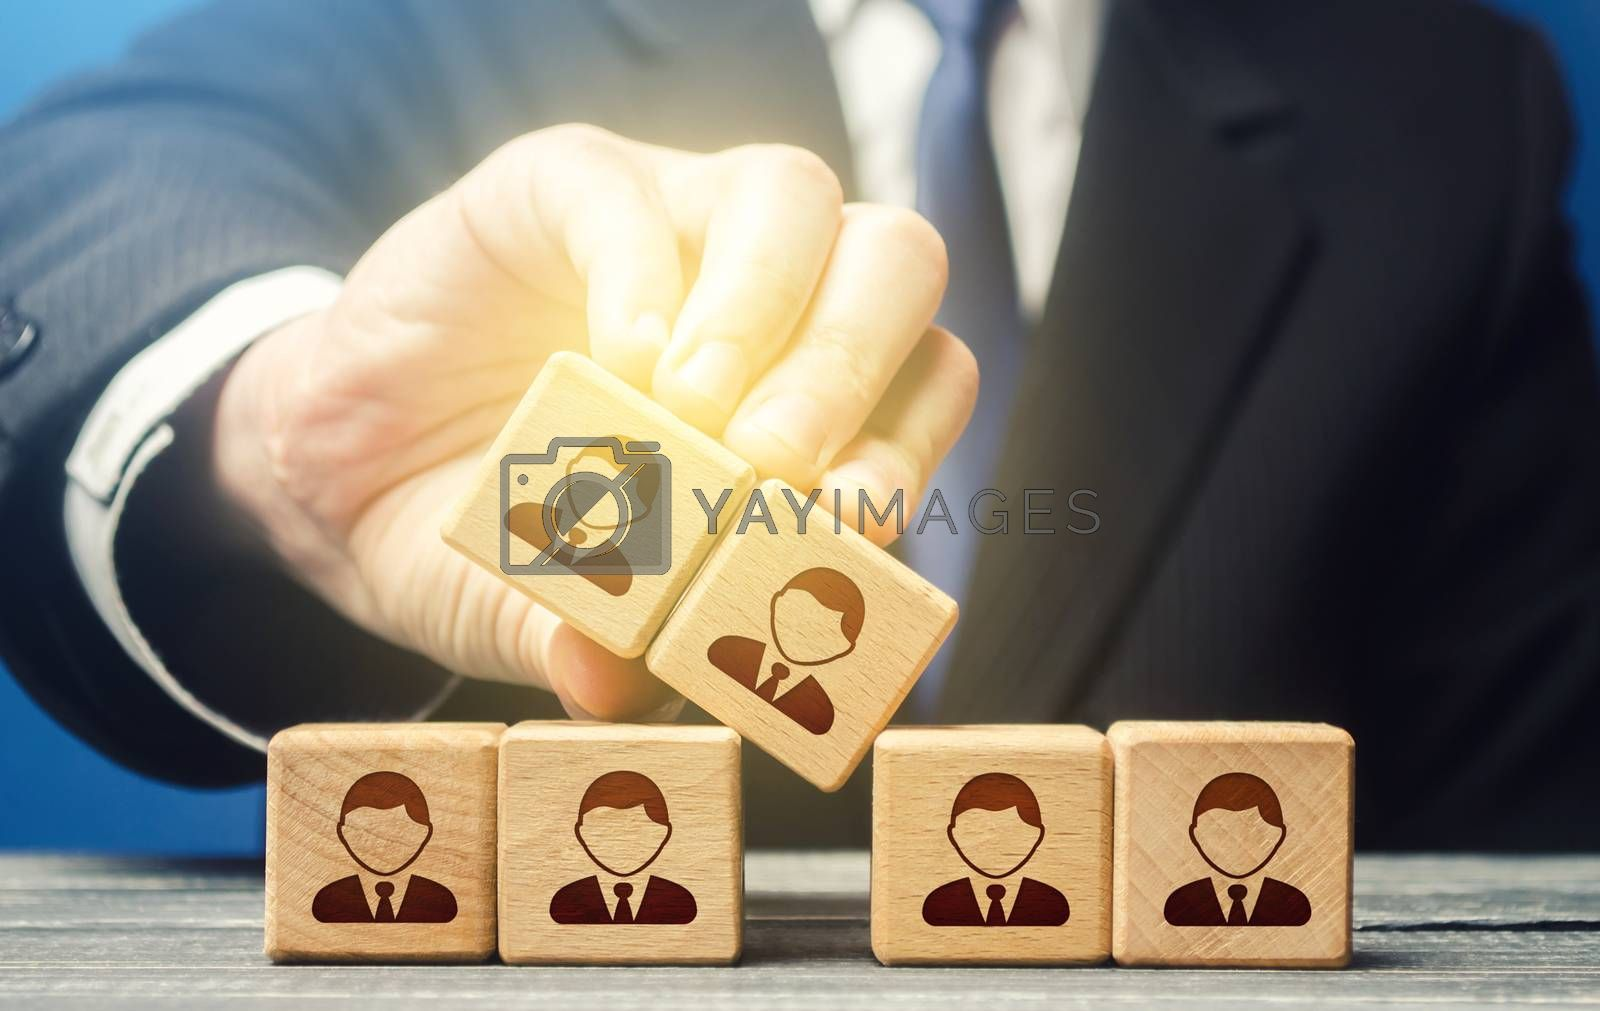 The man expands the team and adds new members. Company organization. Hiring workers. Leadership skills, team personnel management. Recruiting fresh employees for a large project. Accession cooperation